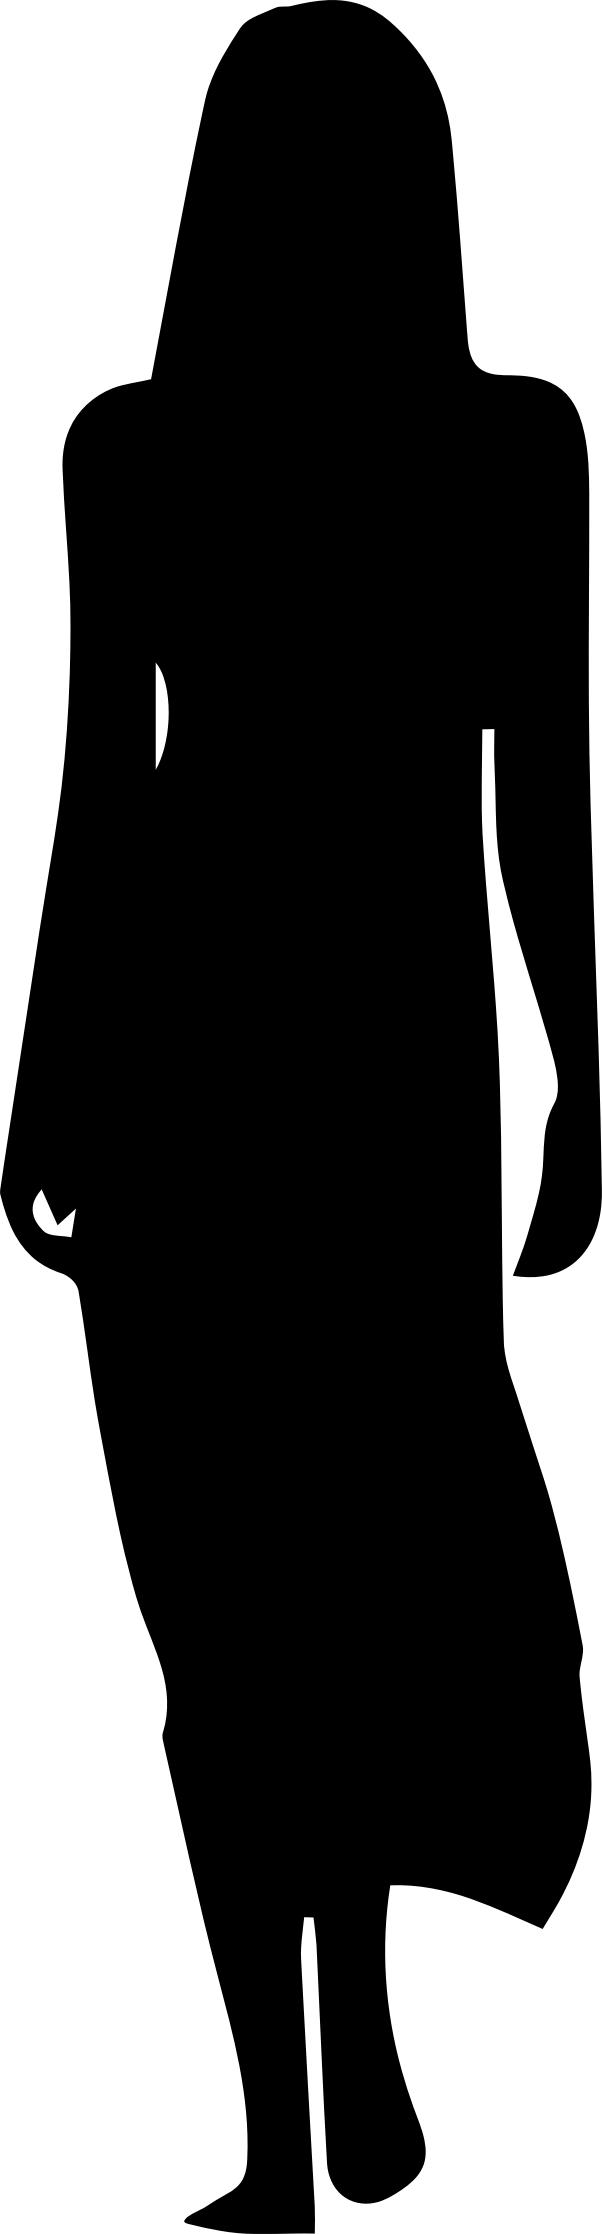 602x2234 Woman In Dress Silhouette Icons Png